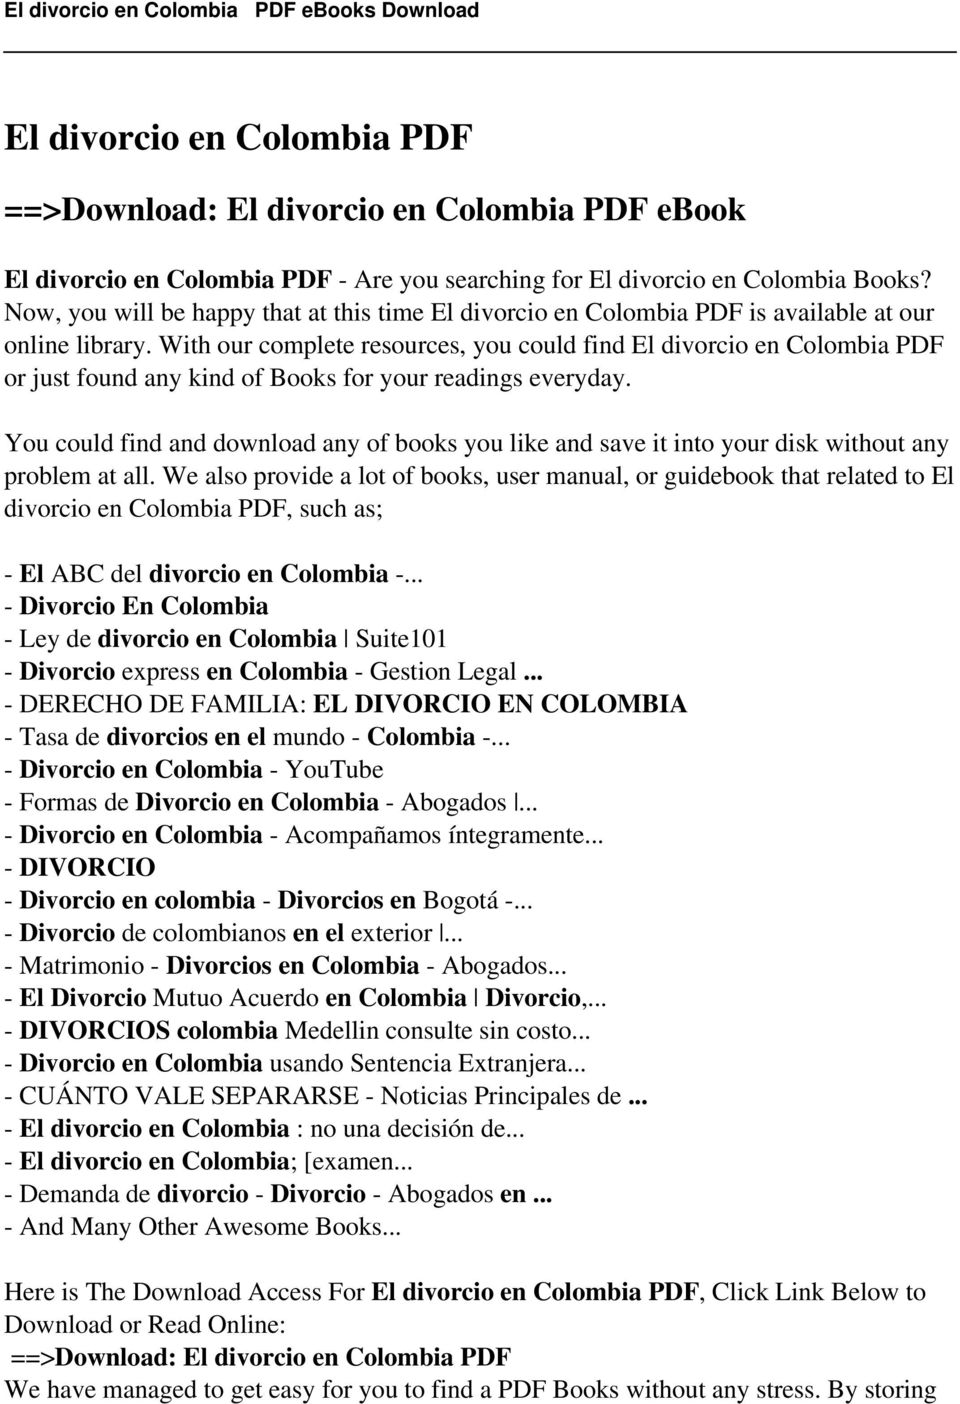 With our complete resources, you could find El divorcio en Colombia PDF or just found any kind of Books for your readings everyday.